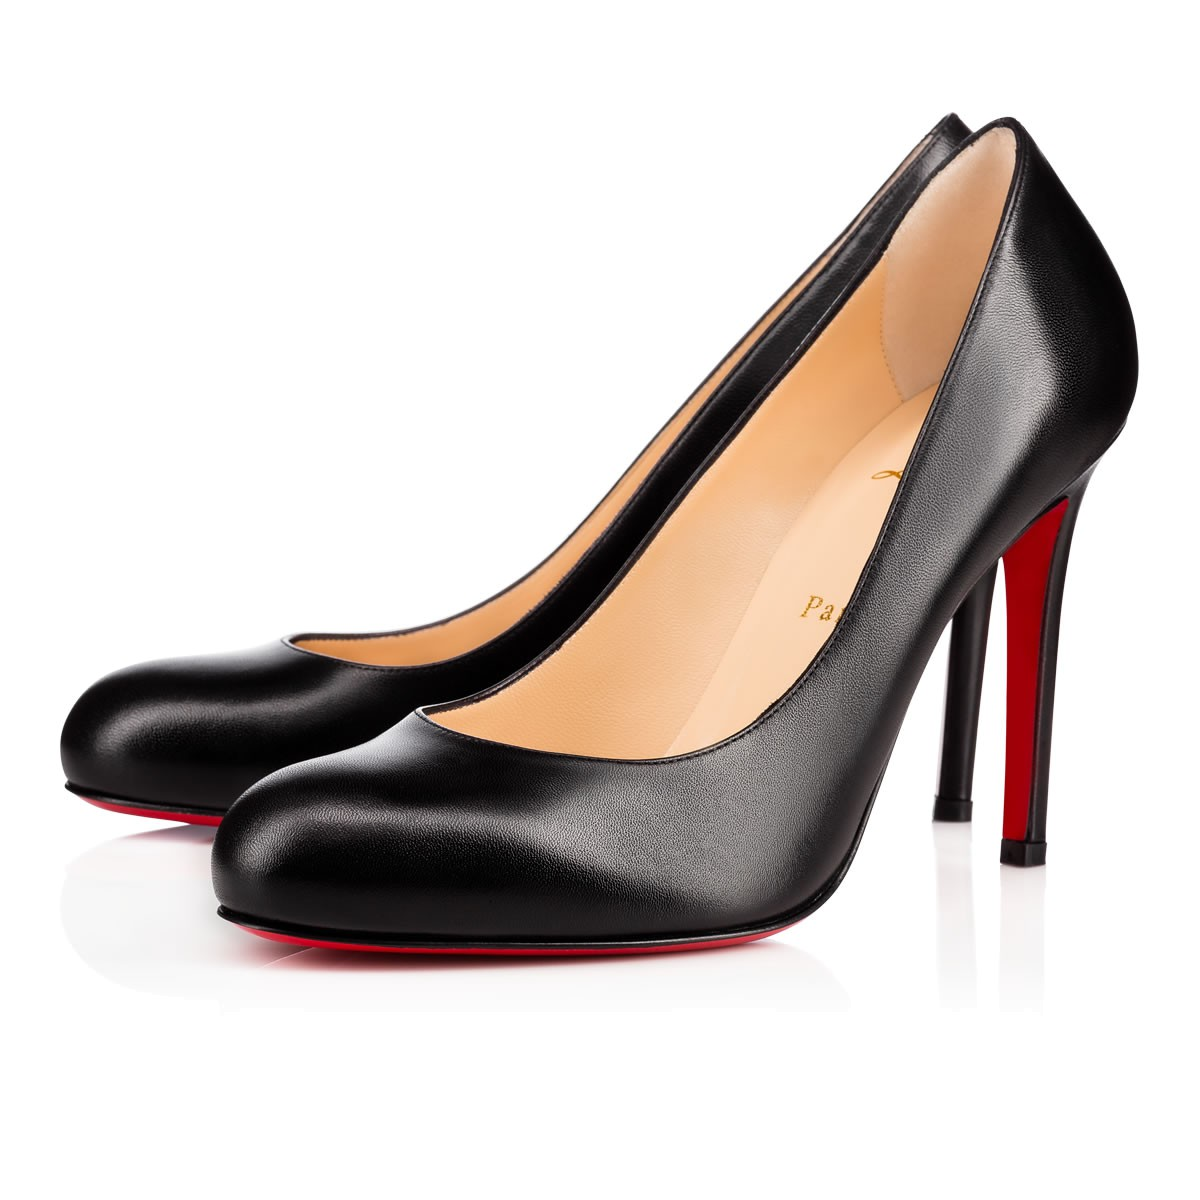 Christian Louboutin Leather Pumps 100% Original Wholesale Quality Free Shipping For Cheap kfElkDgICs